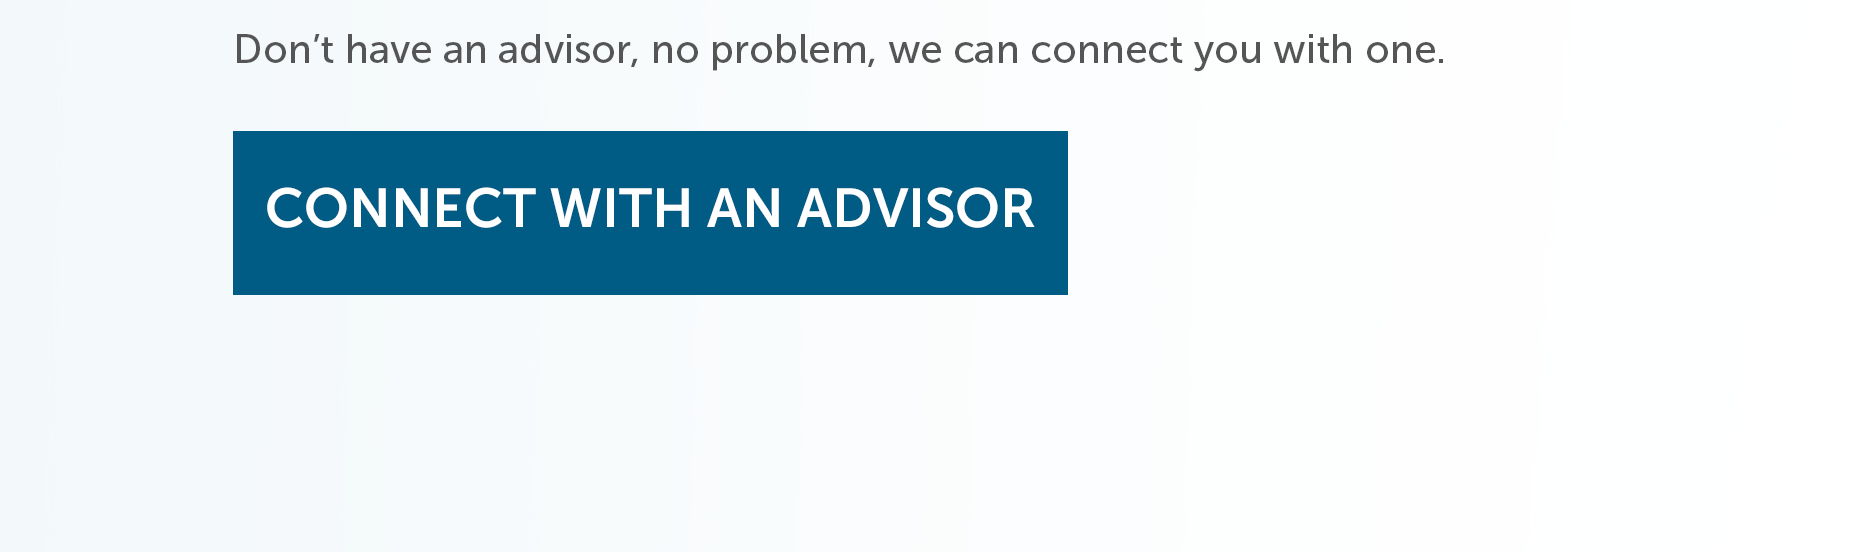 Don't have an advisor, no problem, we can connect you with one. Connect with an Advisor.